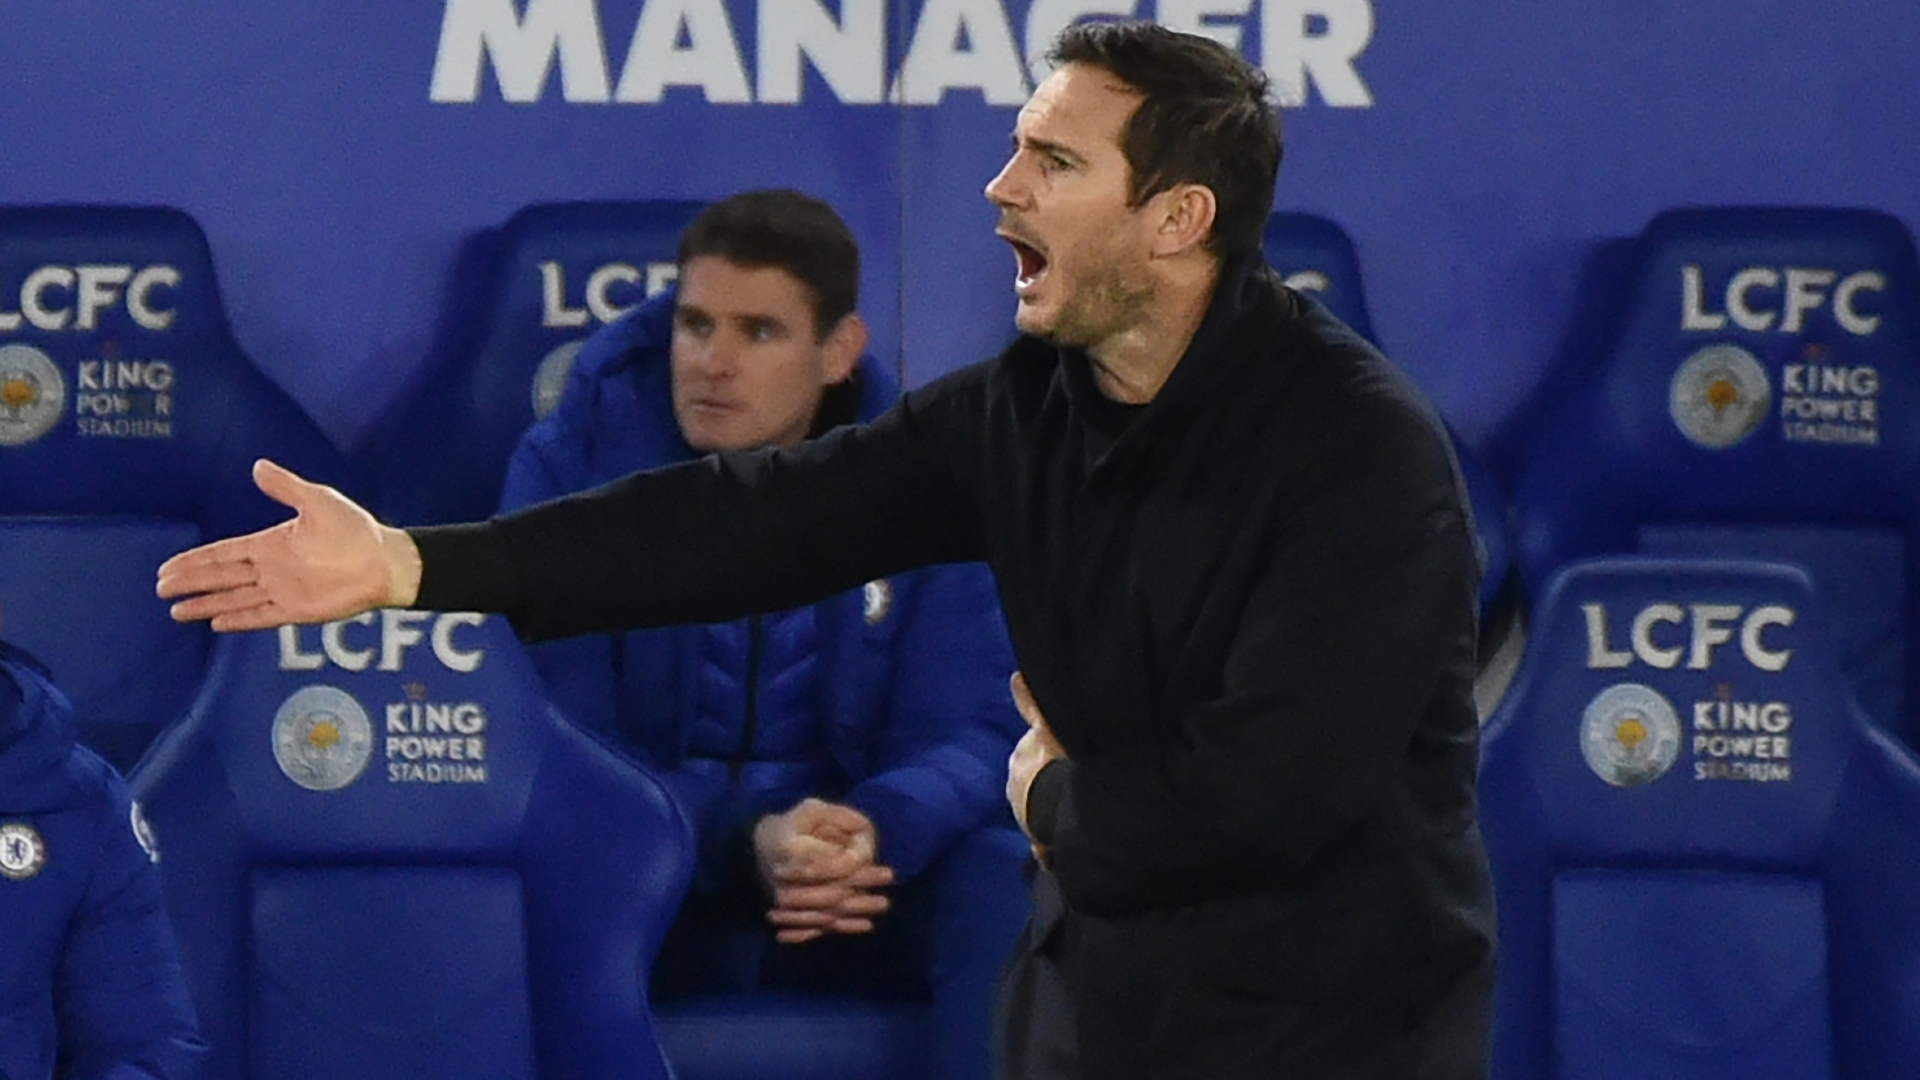 Frank Lampard comes out fighting amid speculation over his Chelsea future